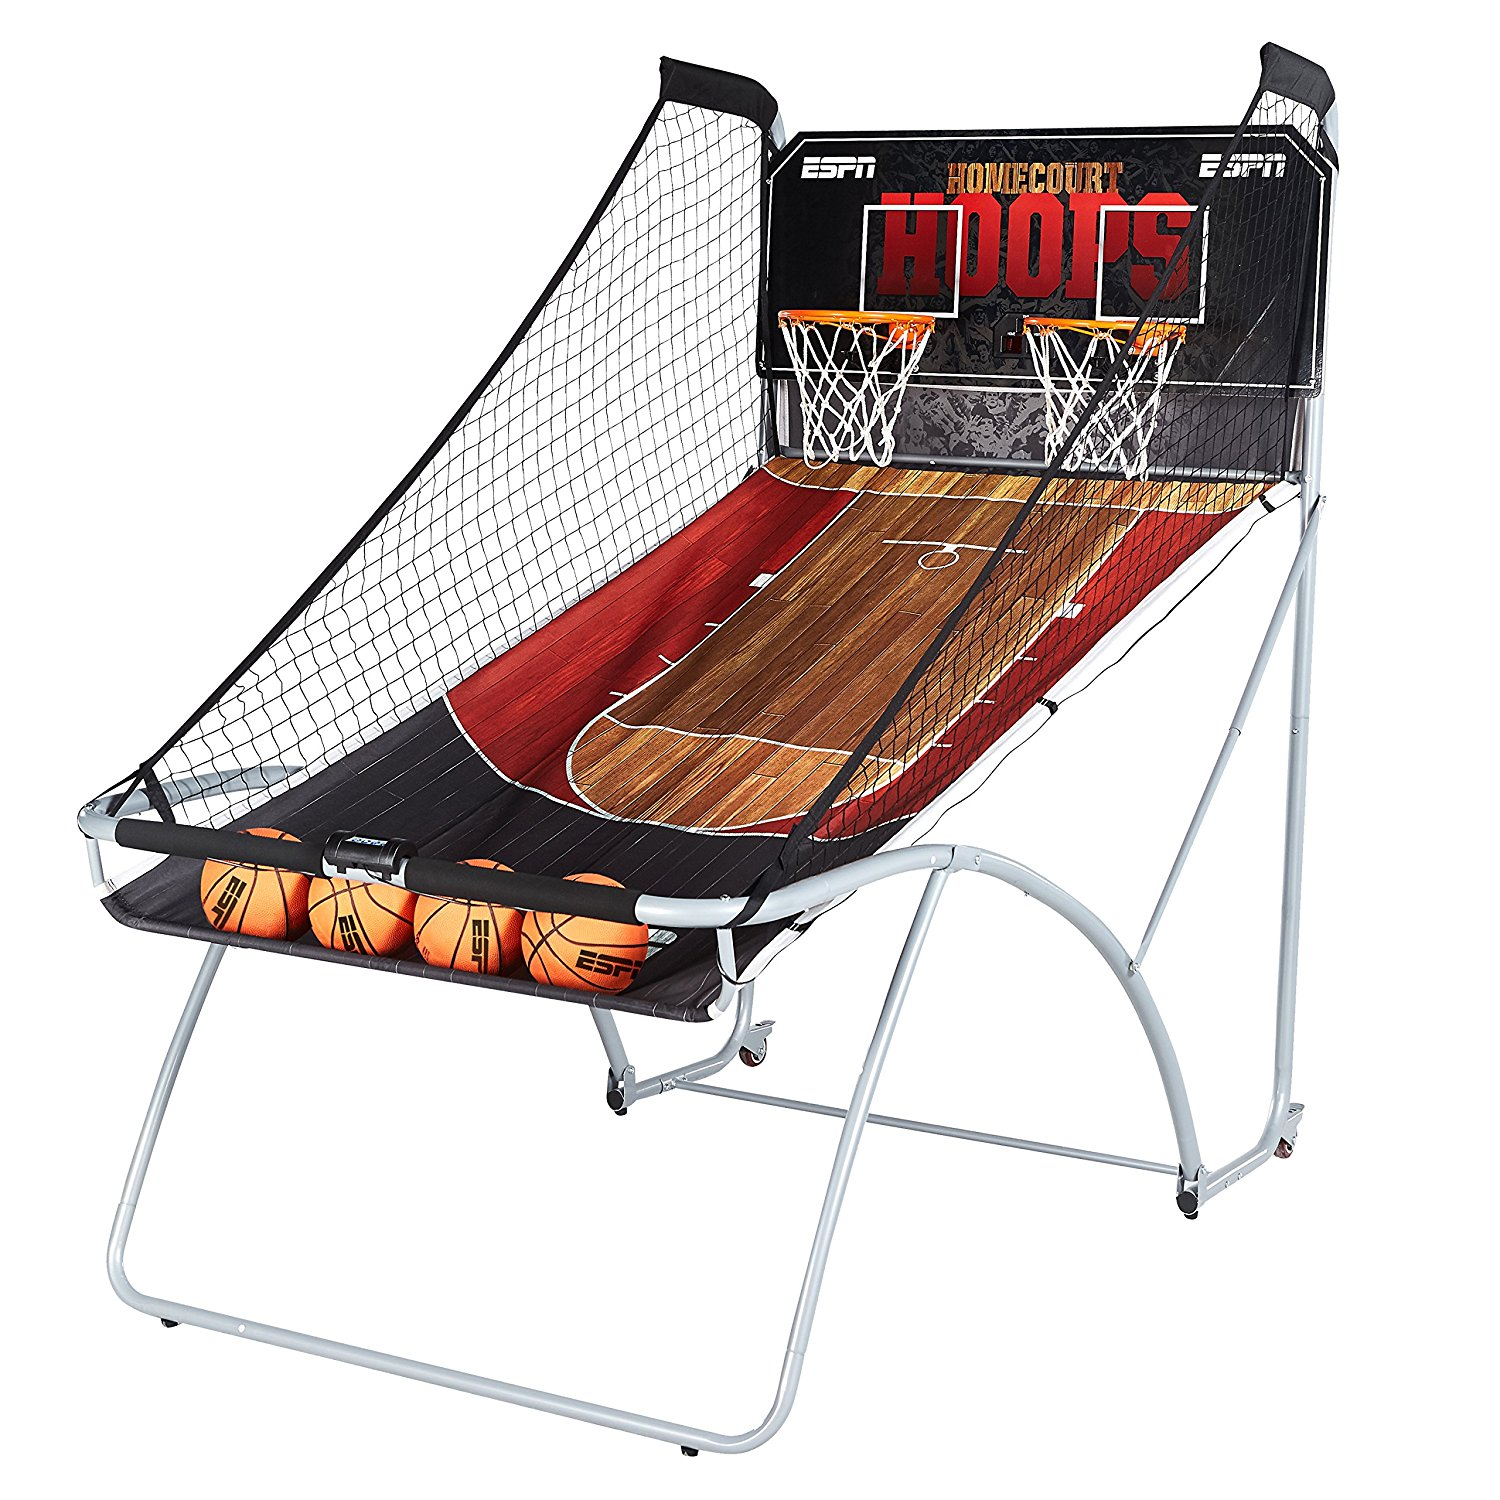 ESPN EZ Fold Indoor Basketball Game for 2 Players with LED Scoring and Arcade Sounds .jpg